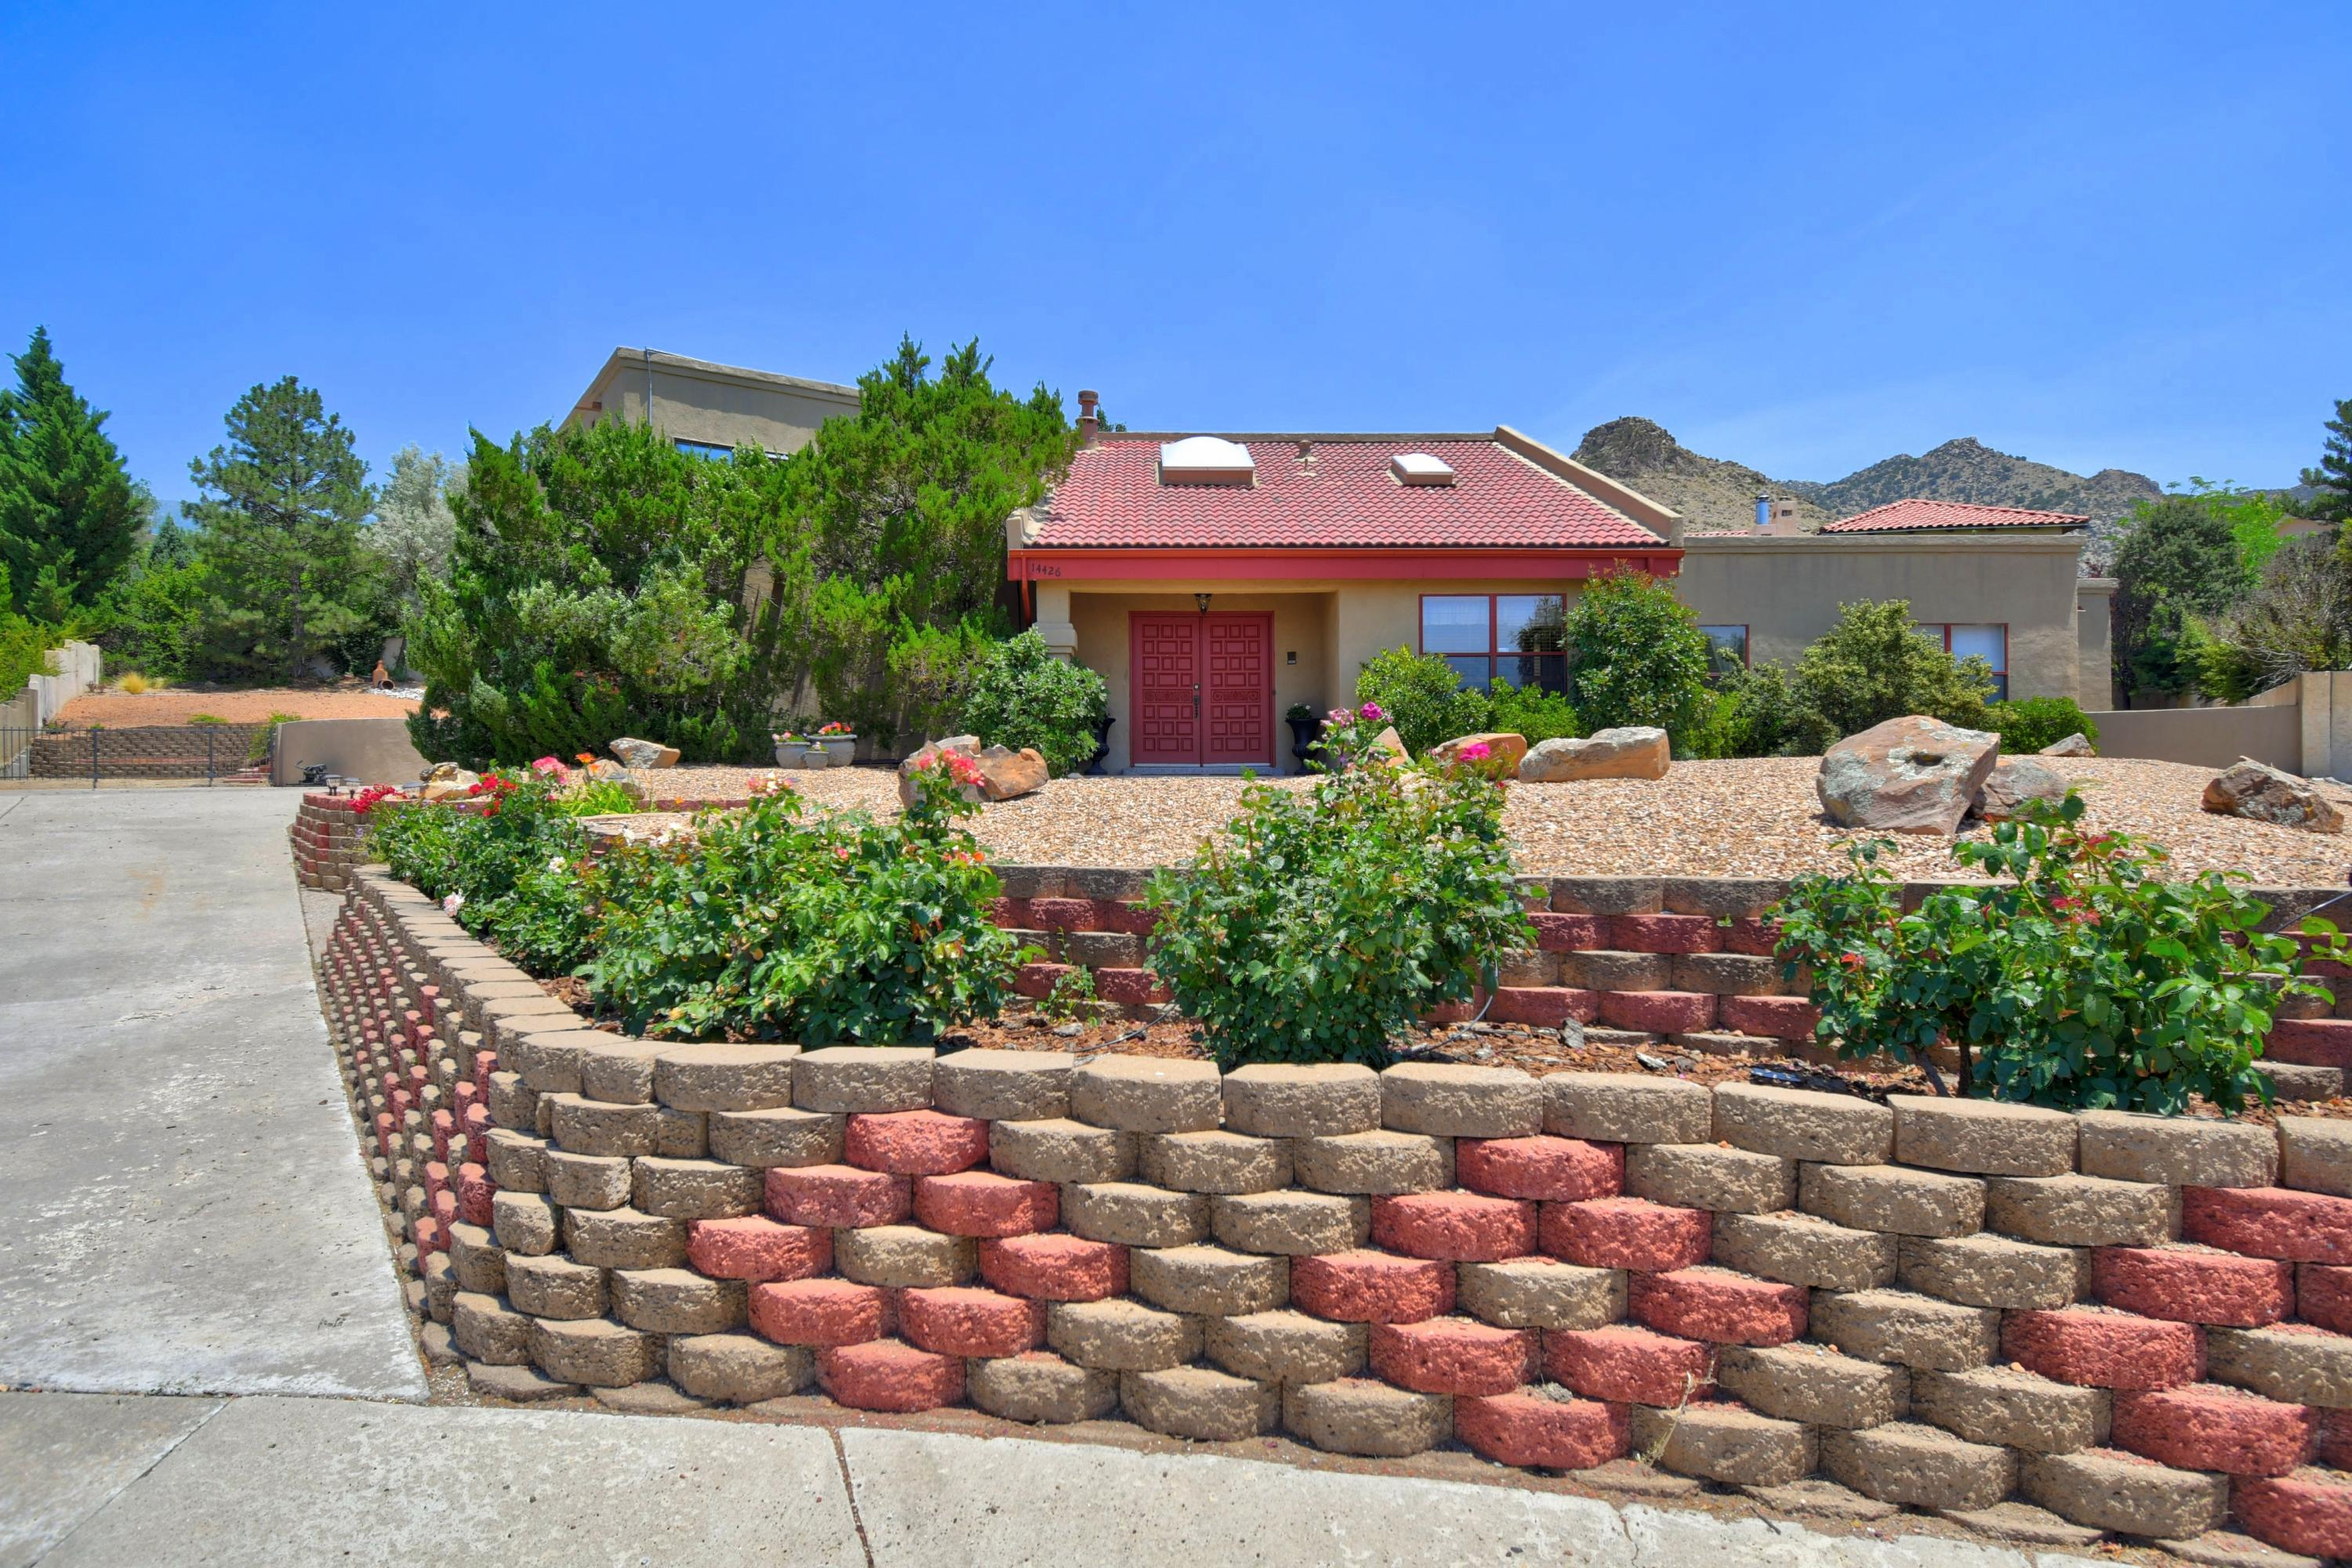 14426 ALENE Court NE Property Photo - Albuquerque, NM real estate listing